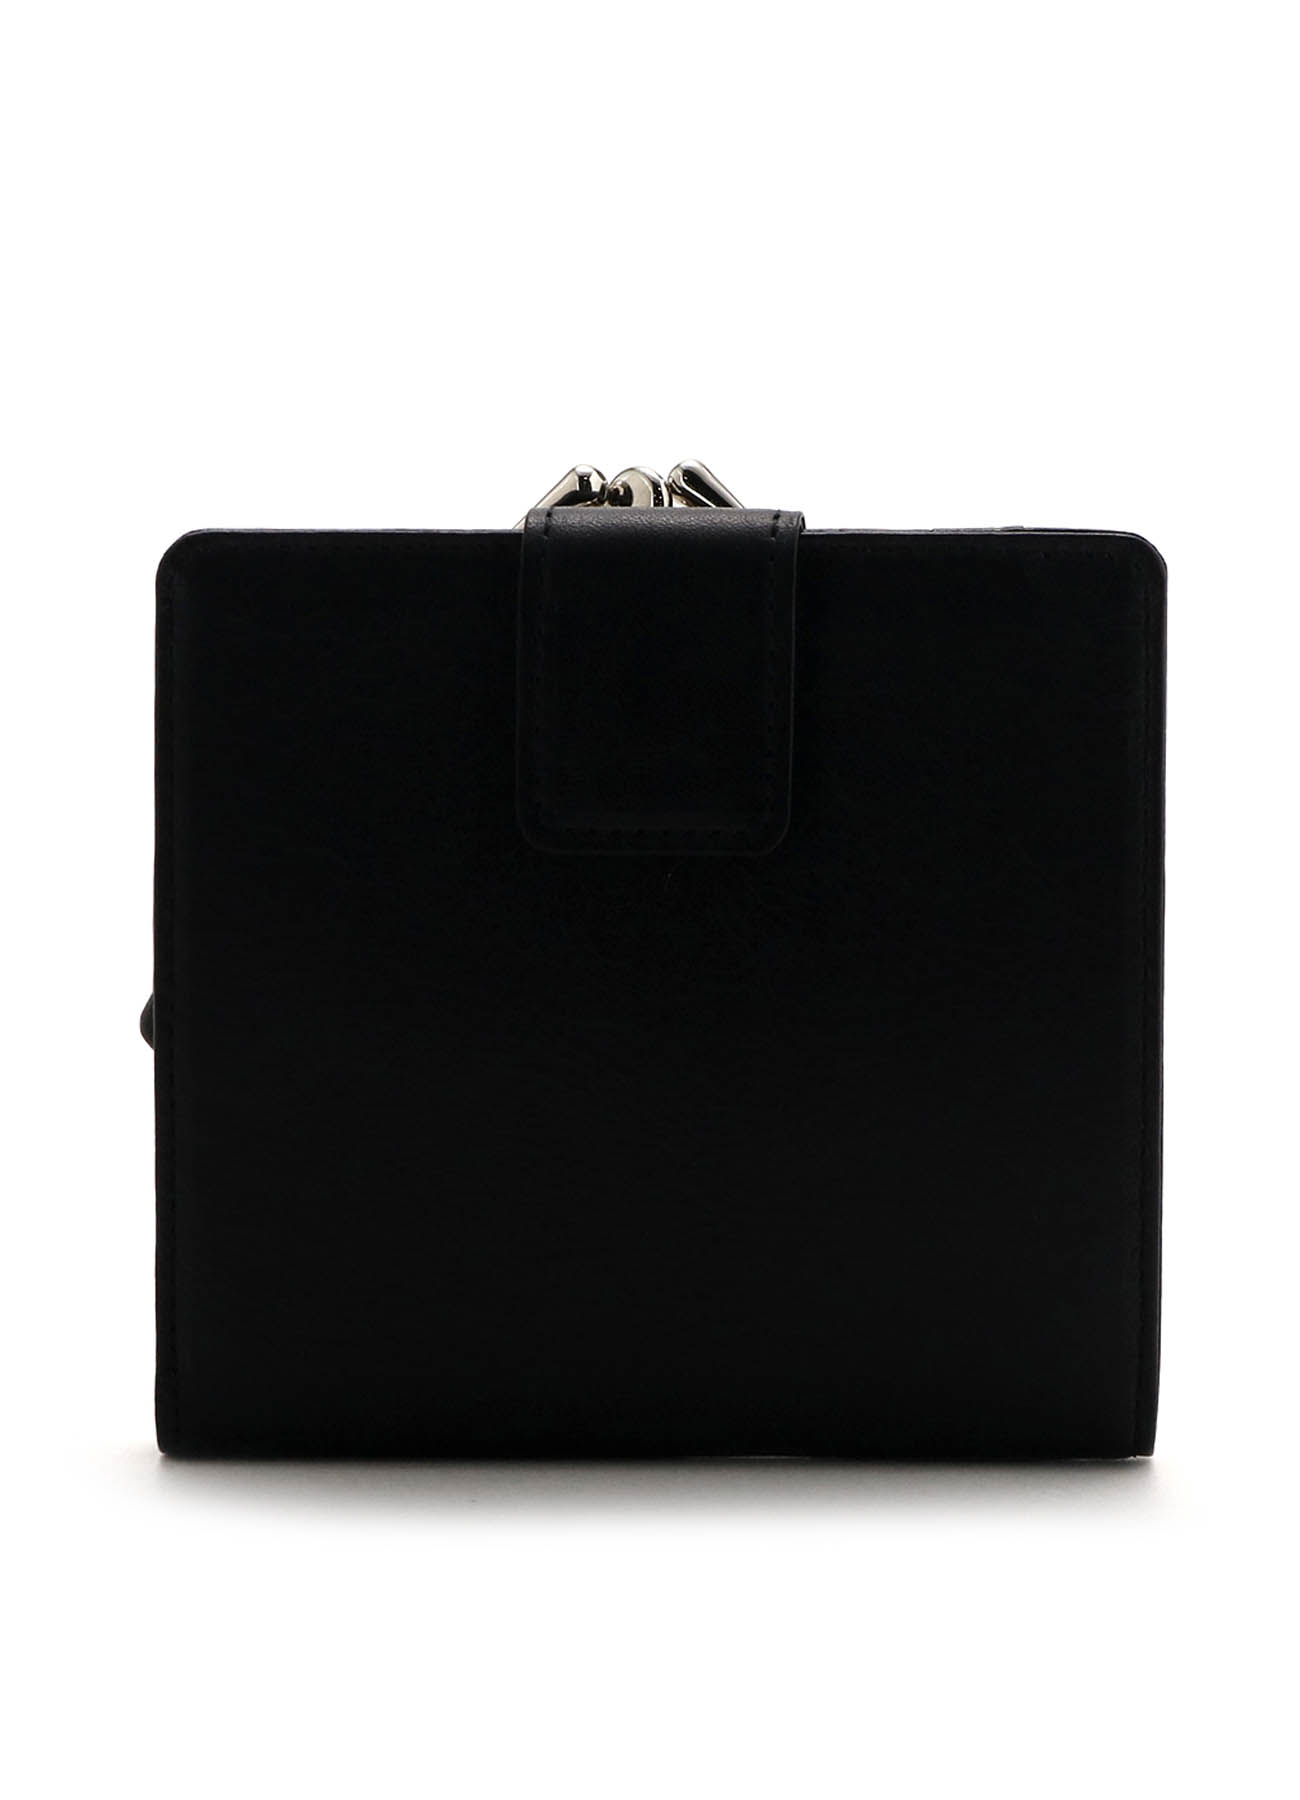 MEDIUM GLOSS LEATHER BASIC CLASP WALLET SMALL